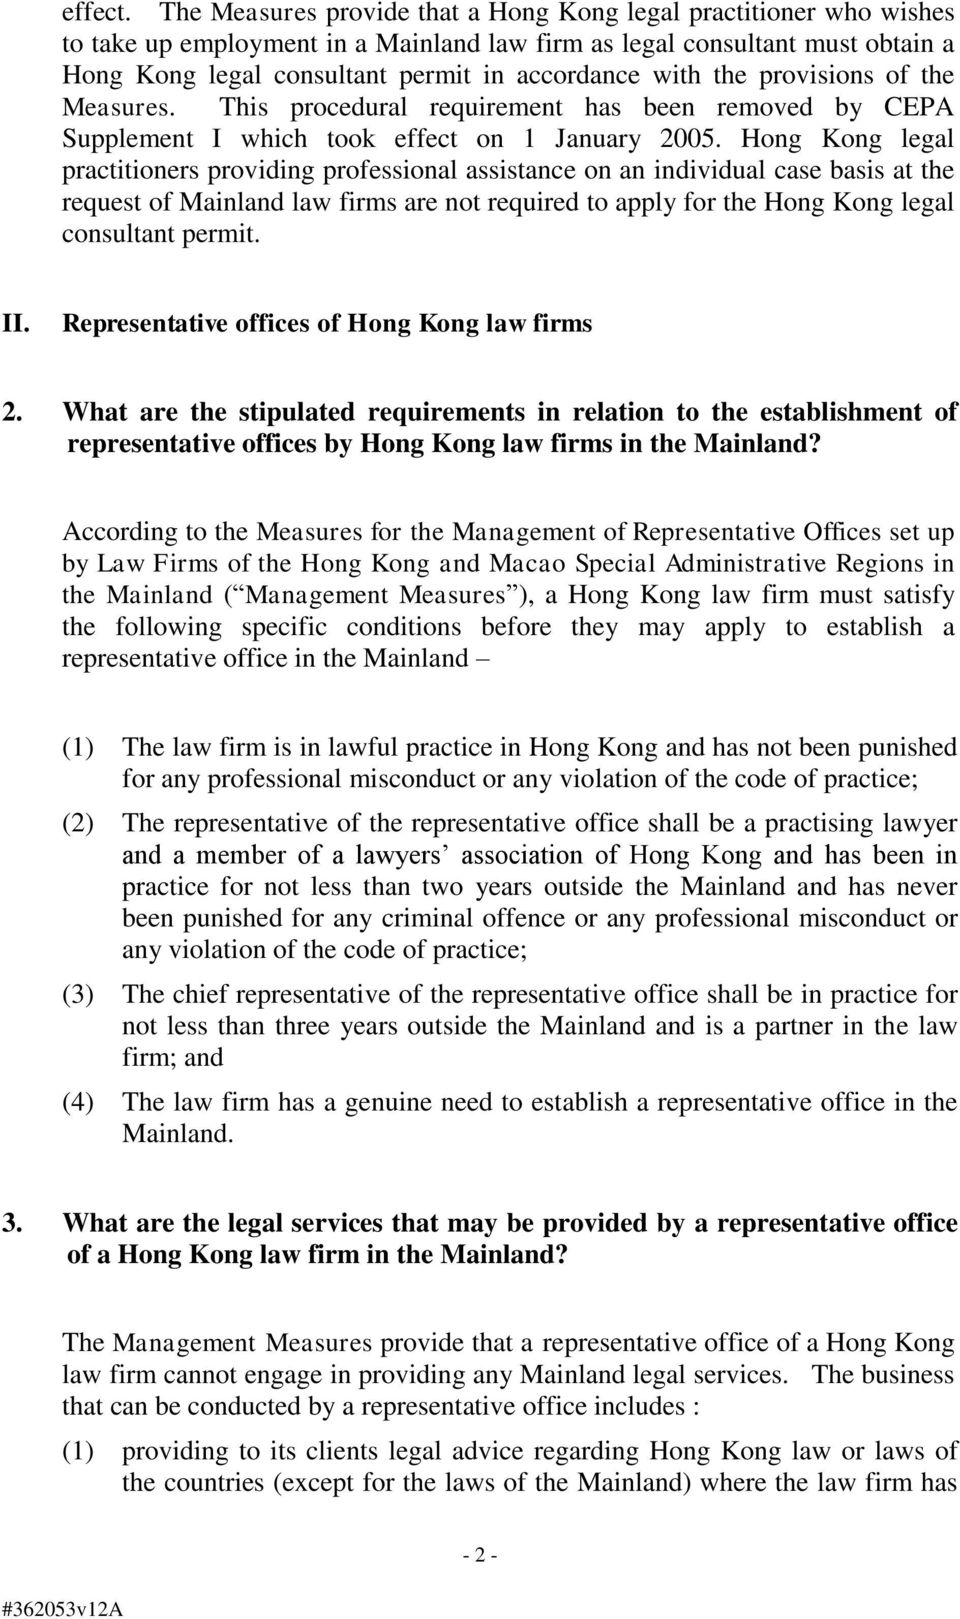 the provisions of the Measures. This procedural requirement has been removed by CEPA Supplement I which took effect on 1 January 2005.